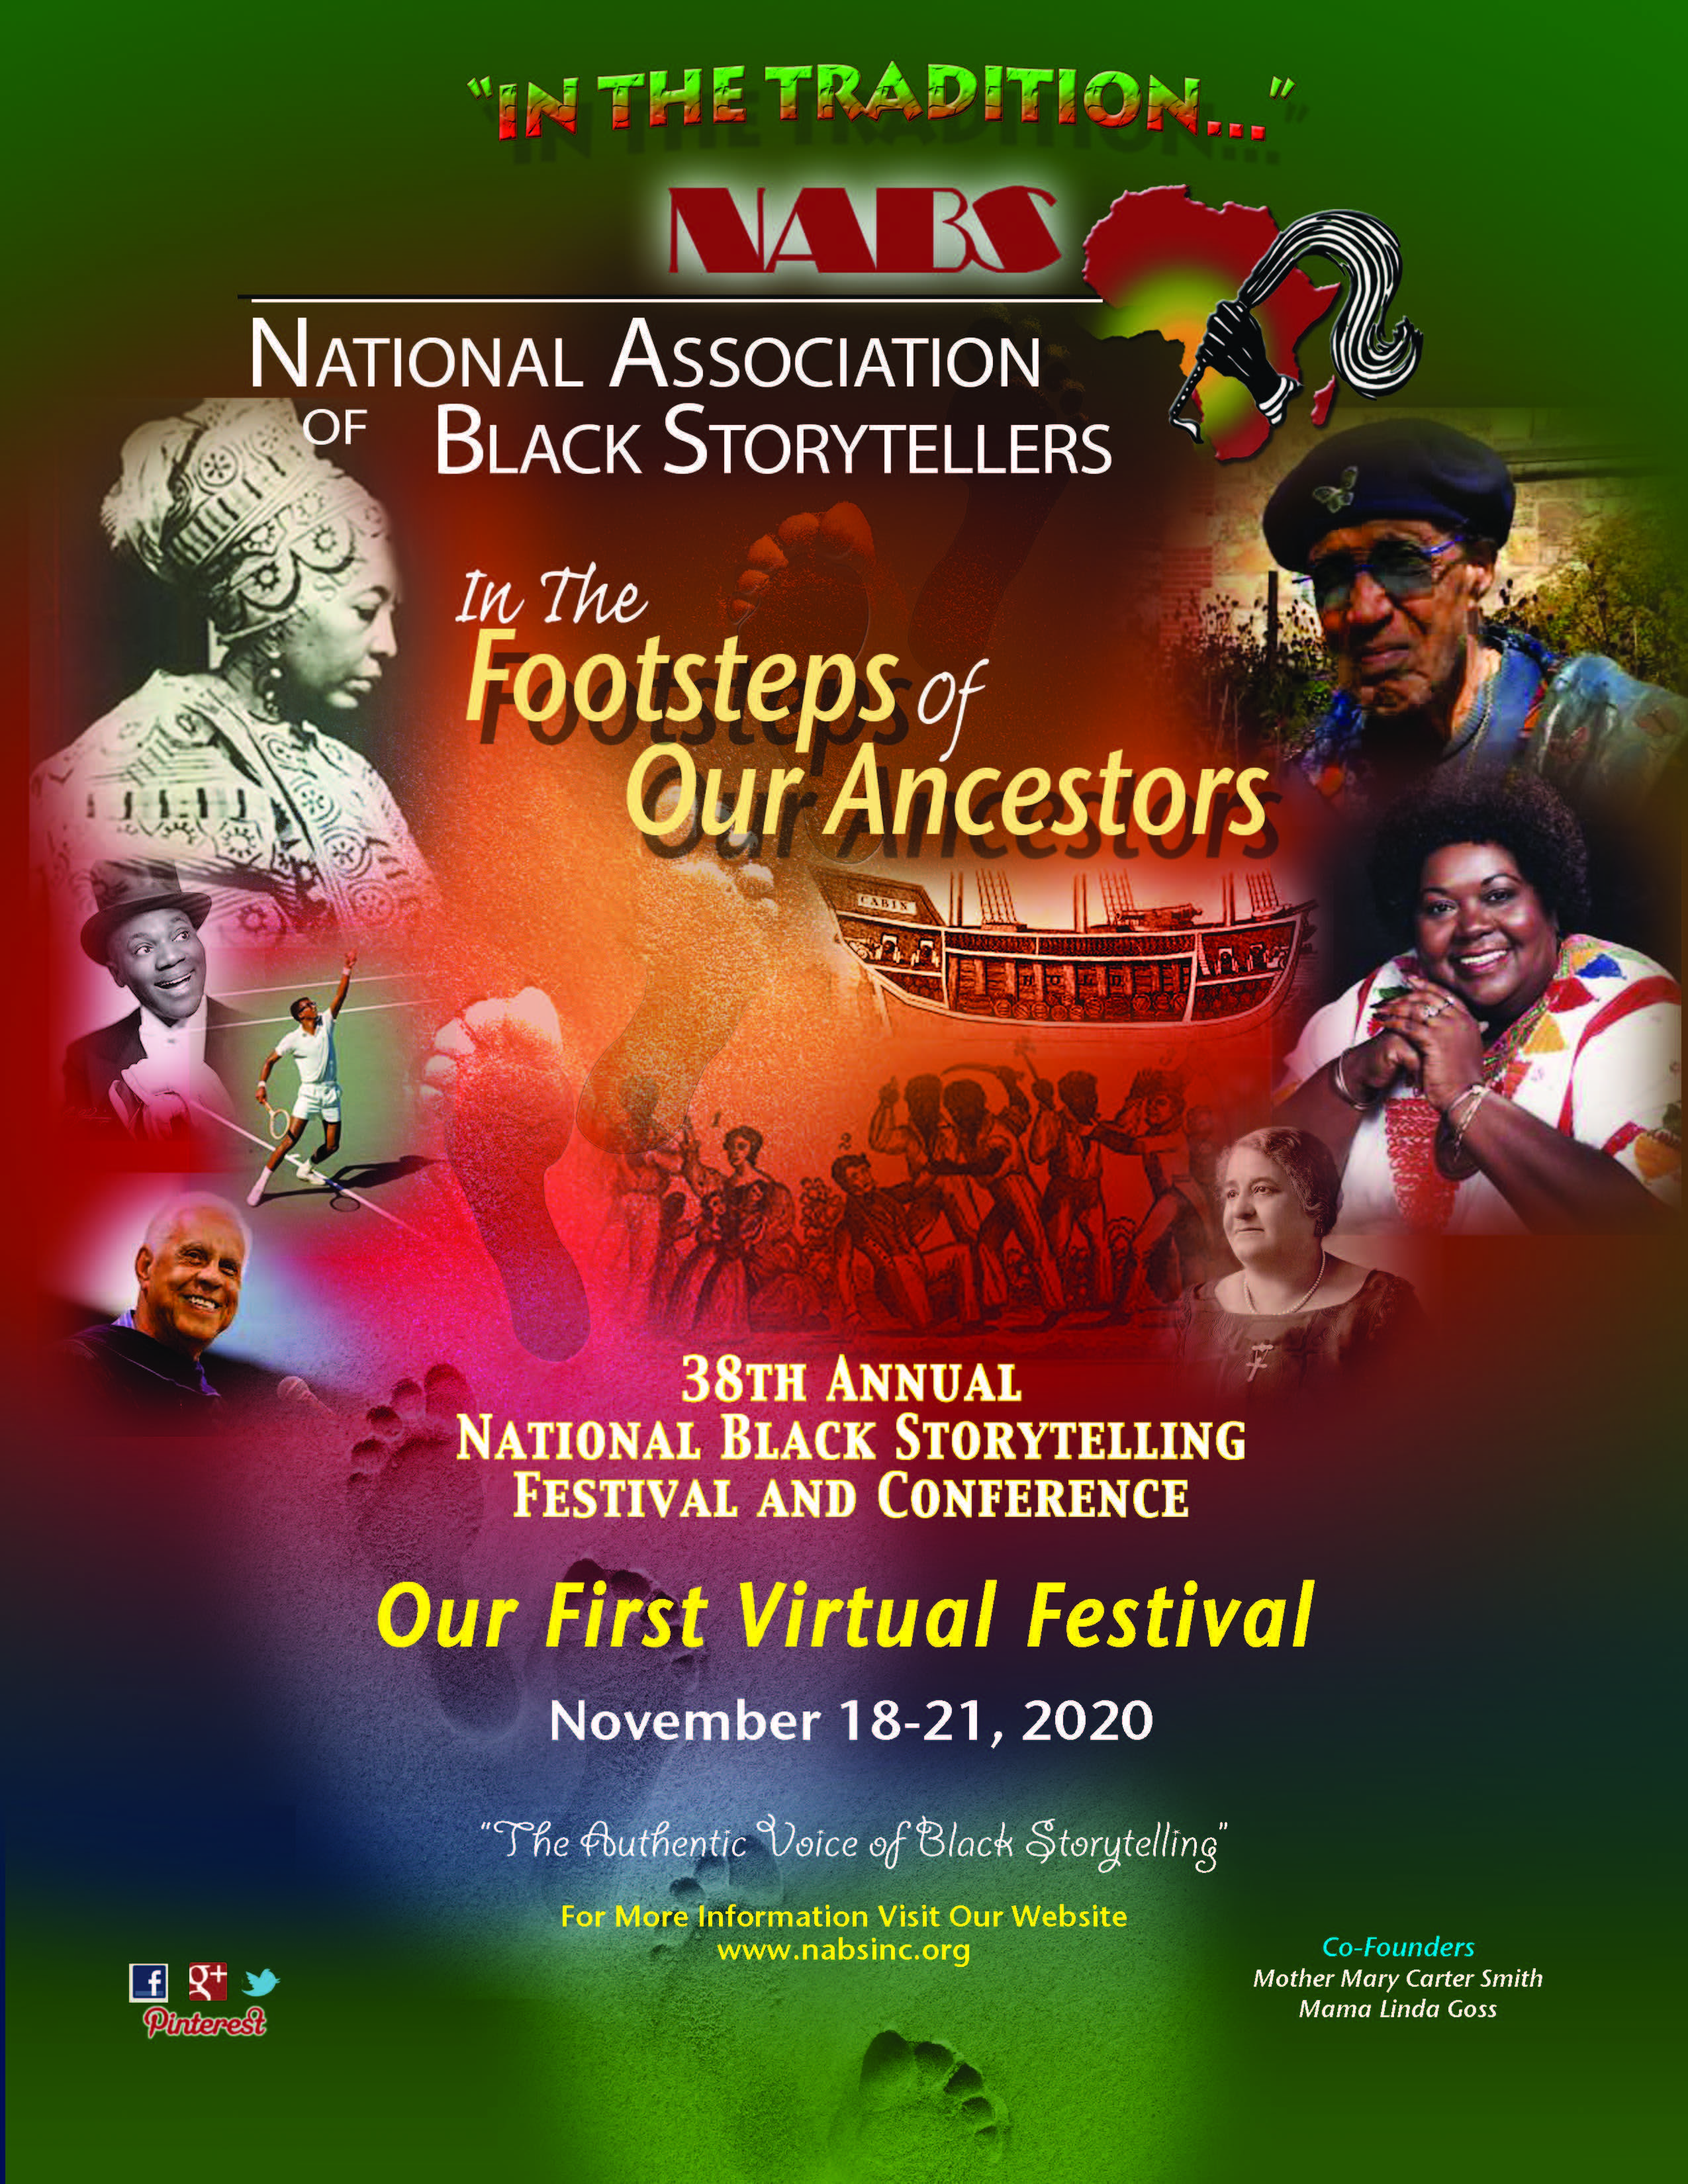 38th Annual National Black Storytelling Festival and Conference